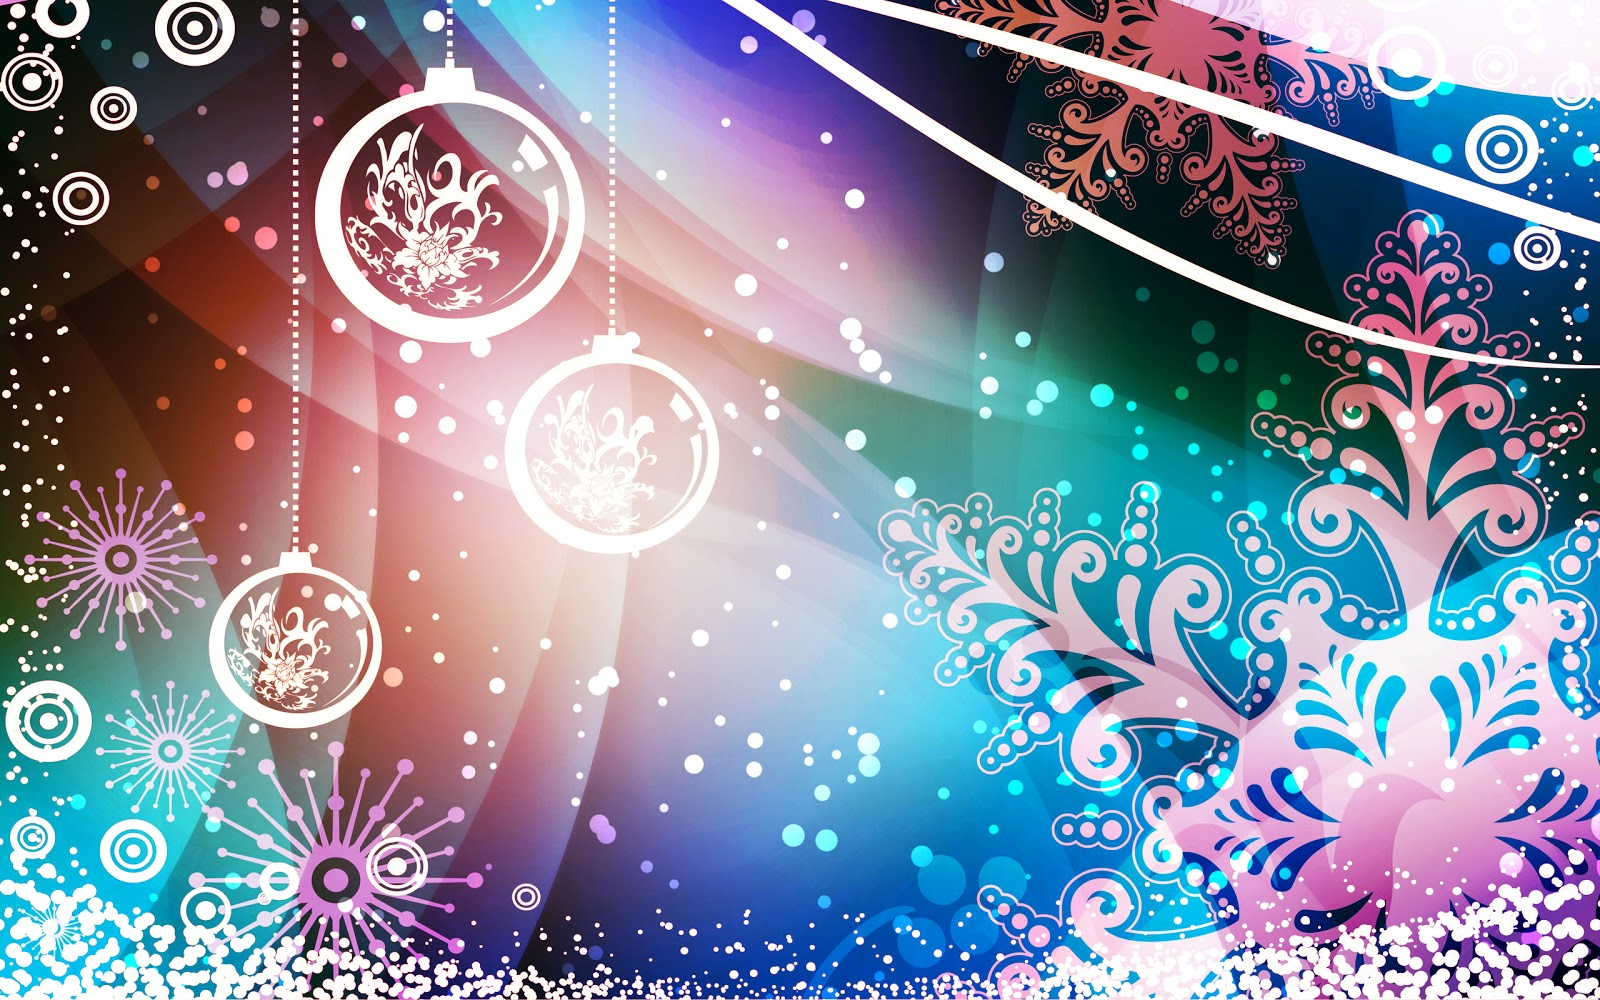 Merry Christmas 2013 Wallpaper:Computer Wallpaper